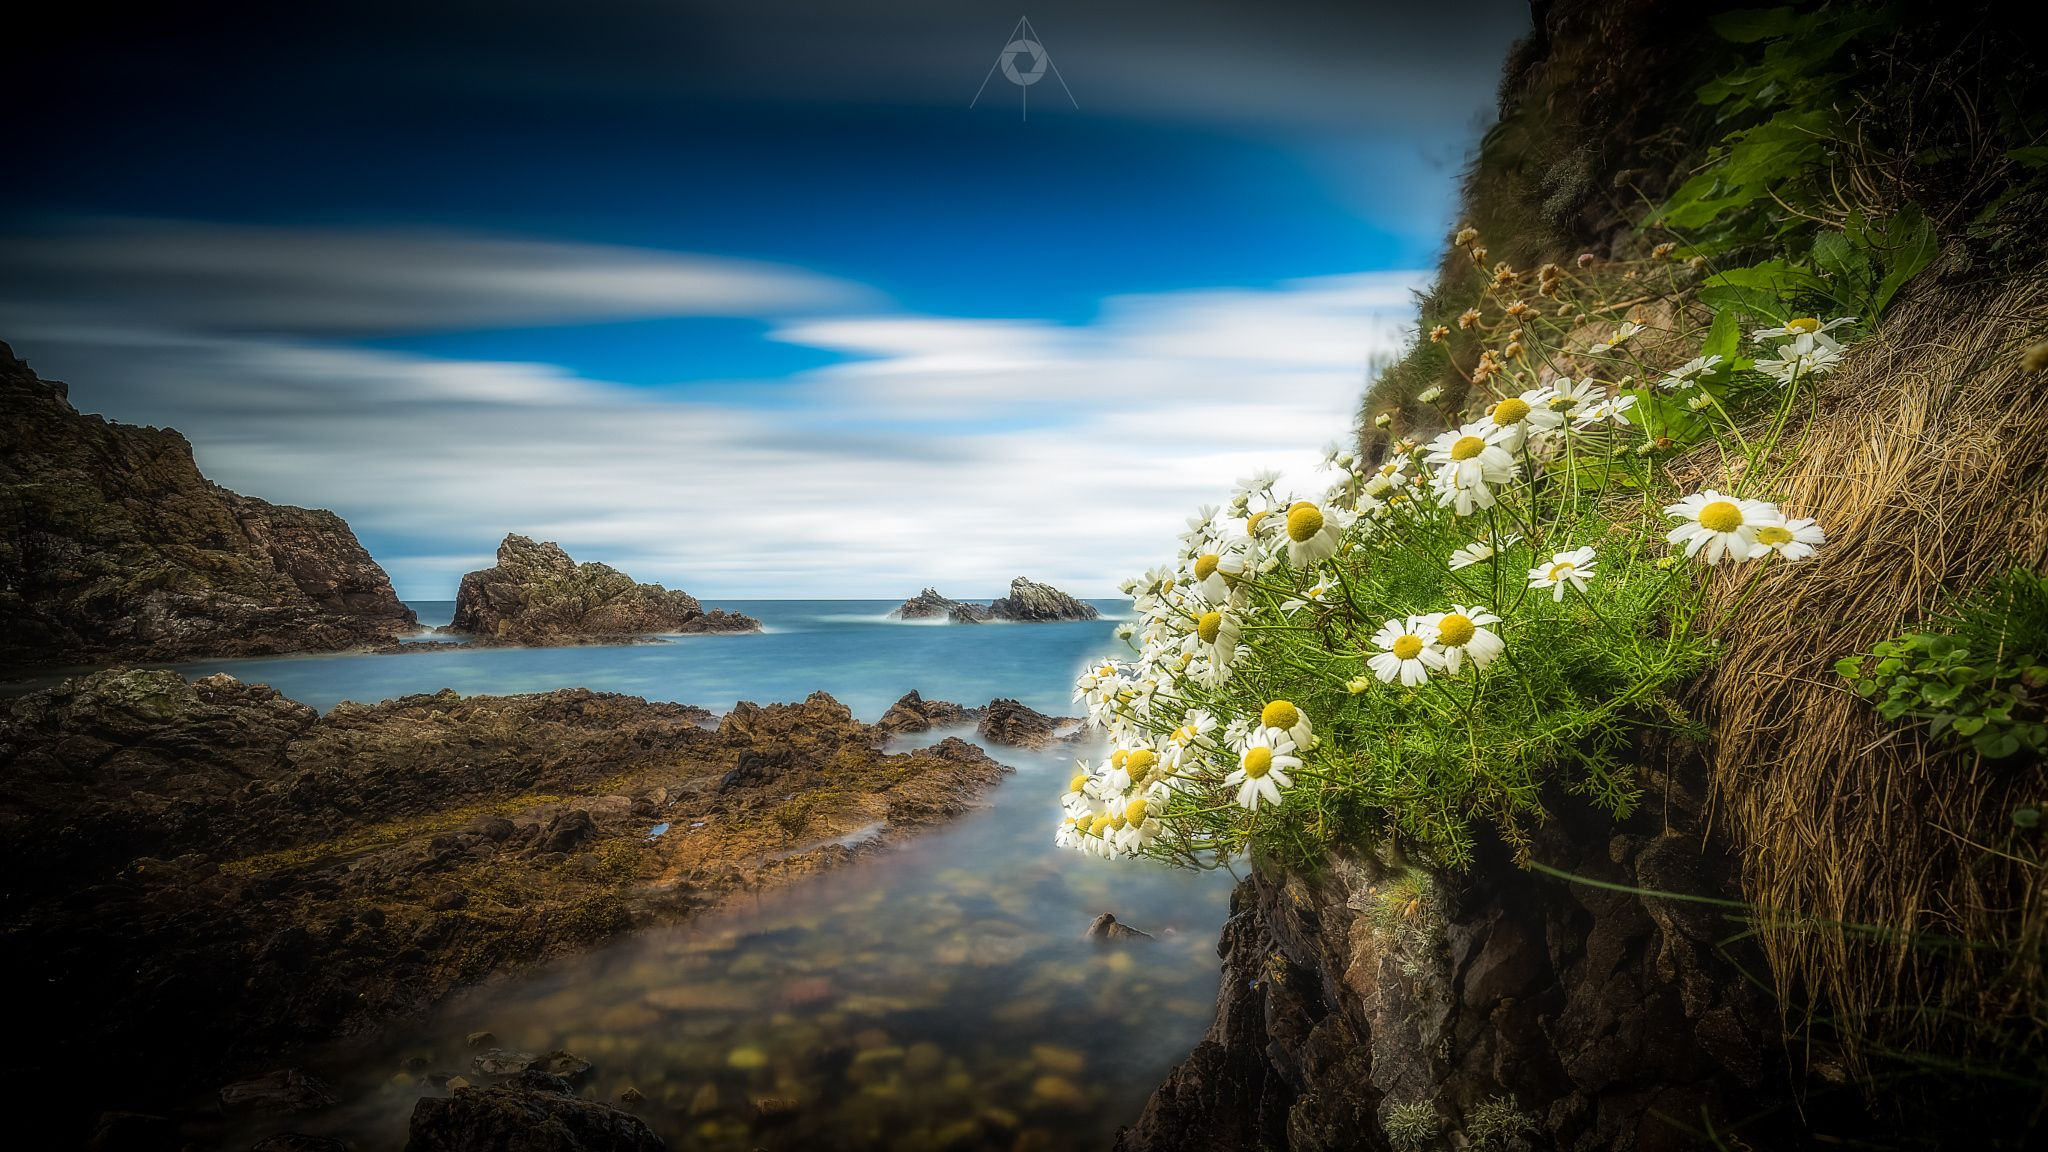 Experimental Blend - A blended long and fast exposure, landscape image of…